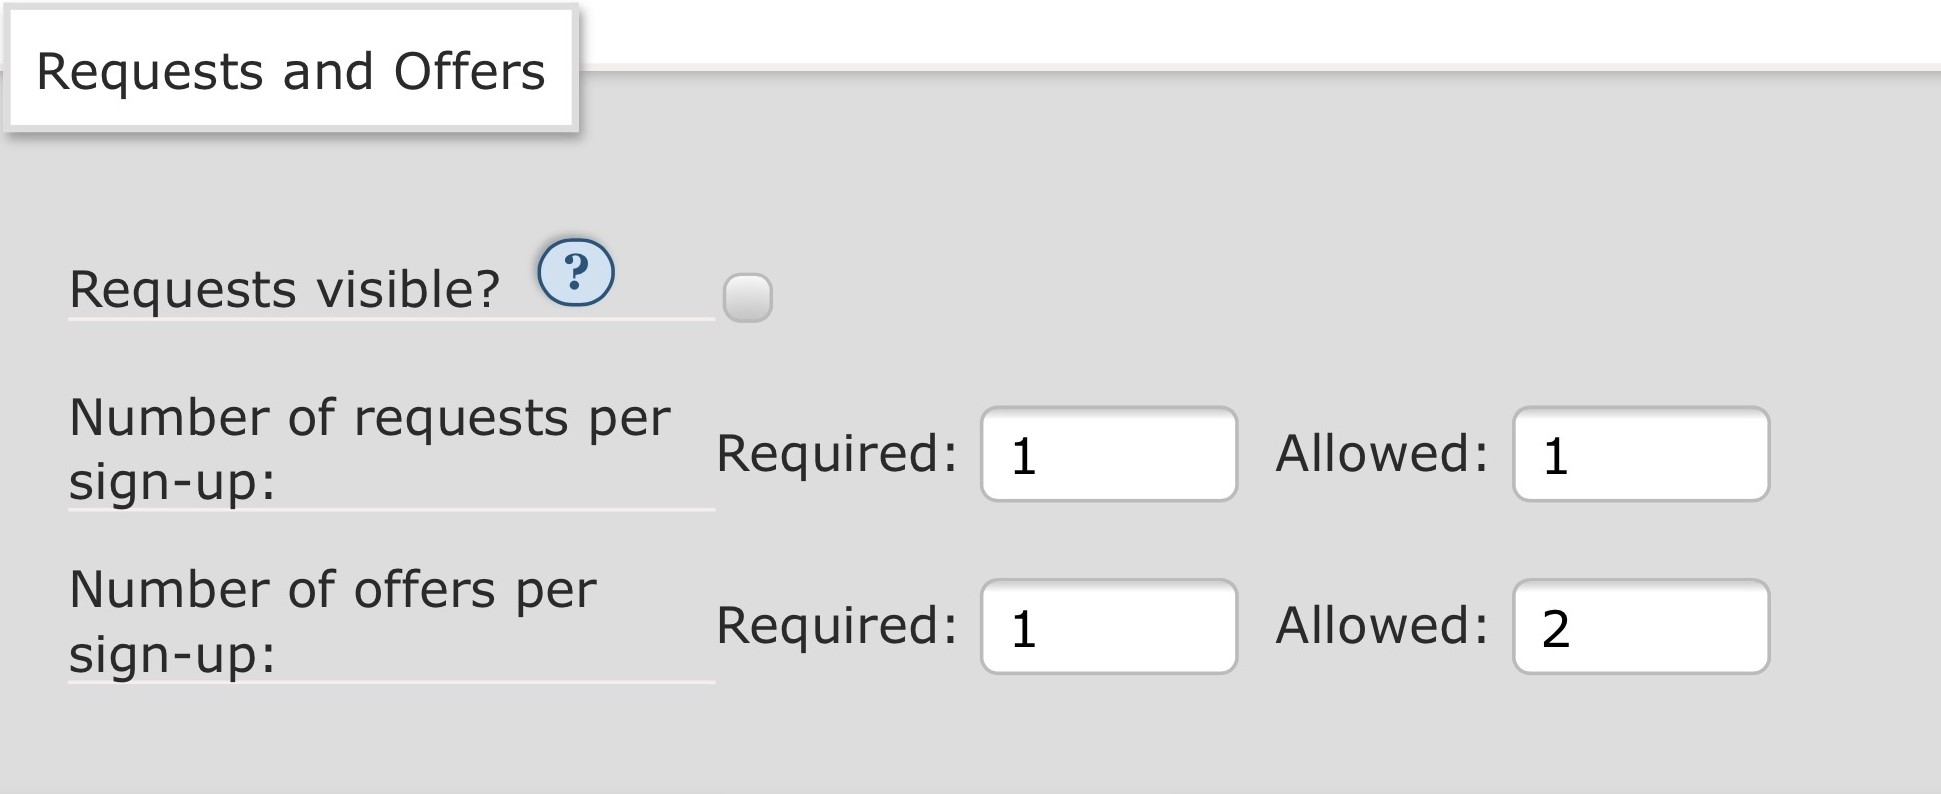 Screenshot: request and offers settings with one required and one allowed request, and one required and two allowed offers. Requests visible? is not checked.